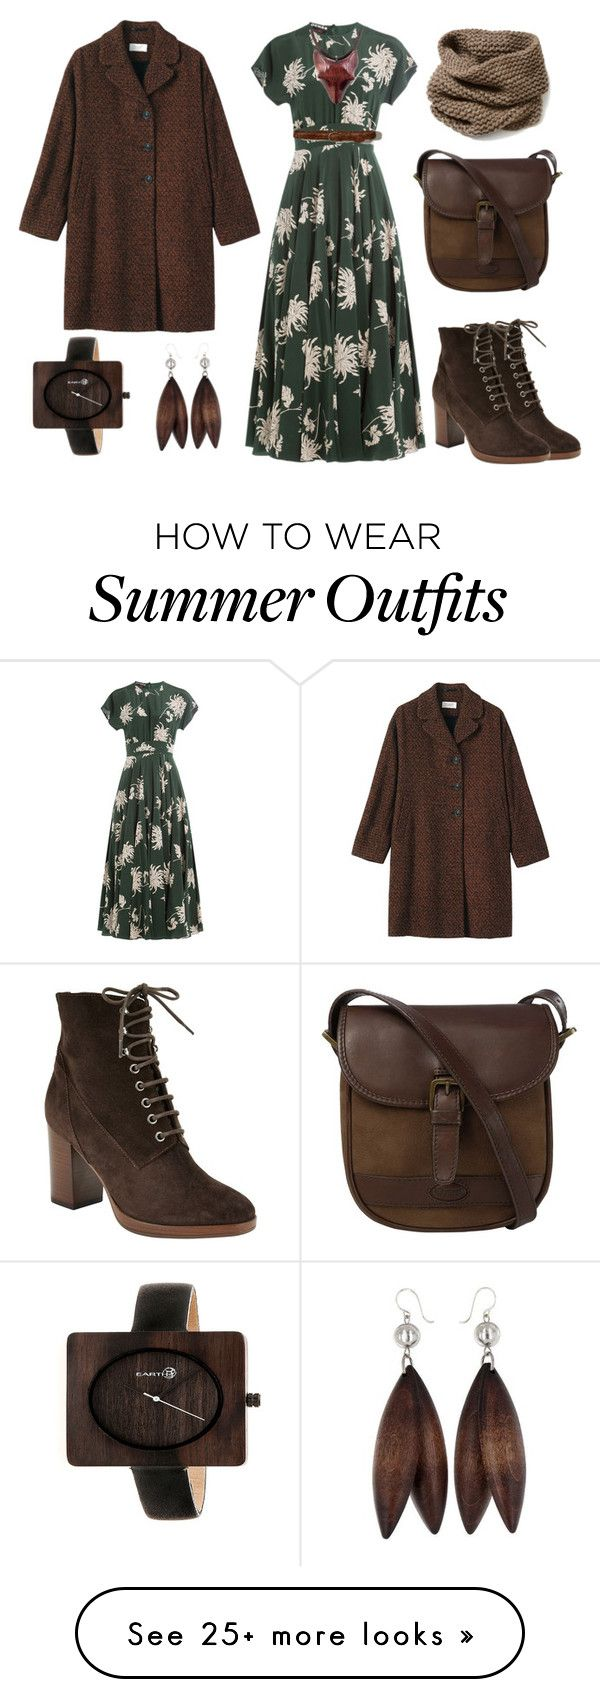 """""""027. Into the Woods outfit for Warm Summer color type"""" by sollis on P..."""